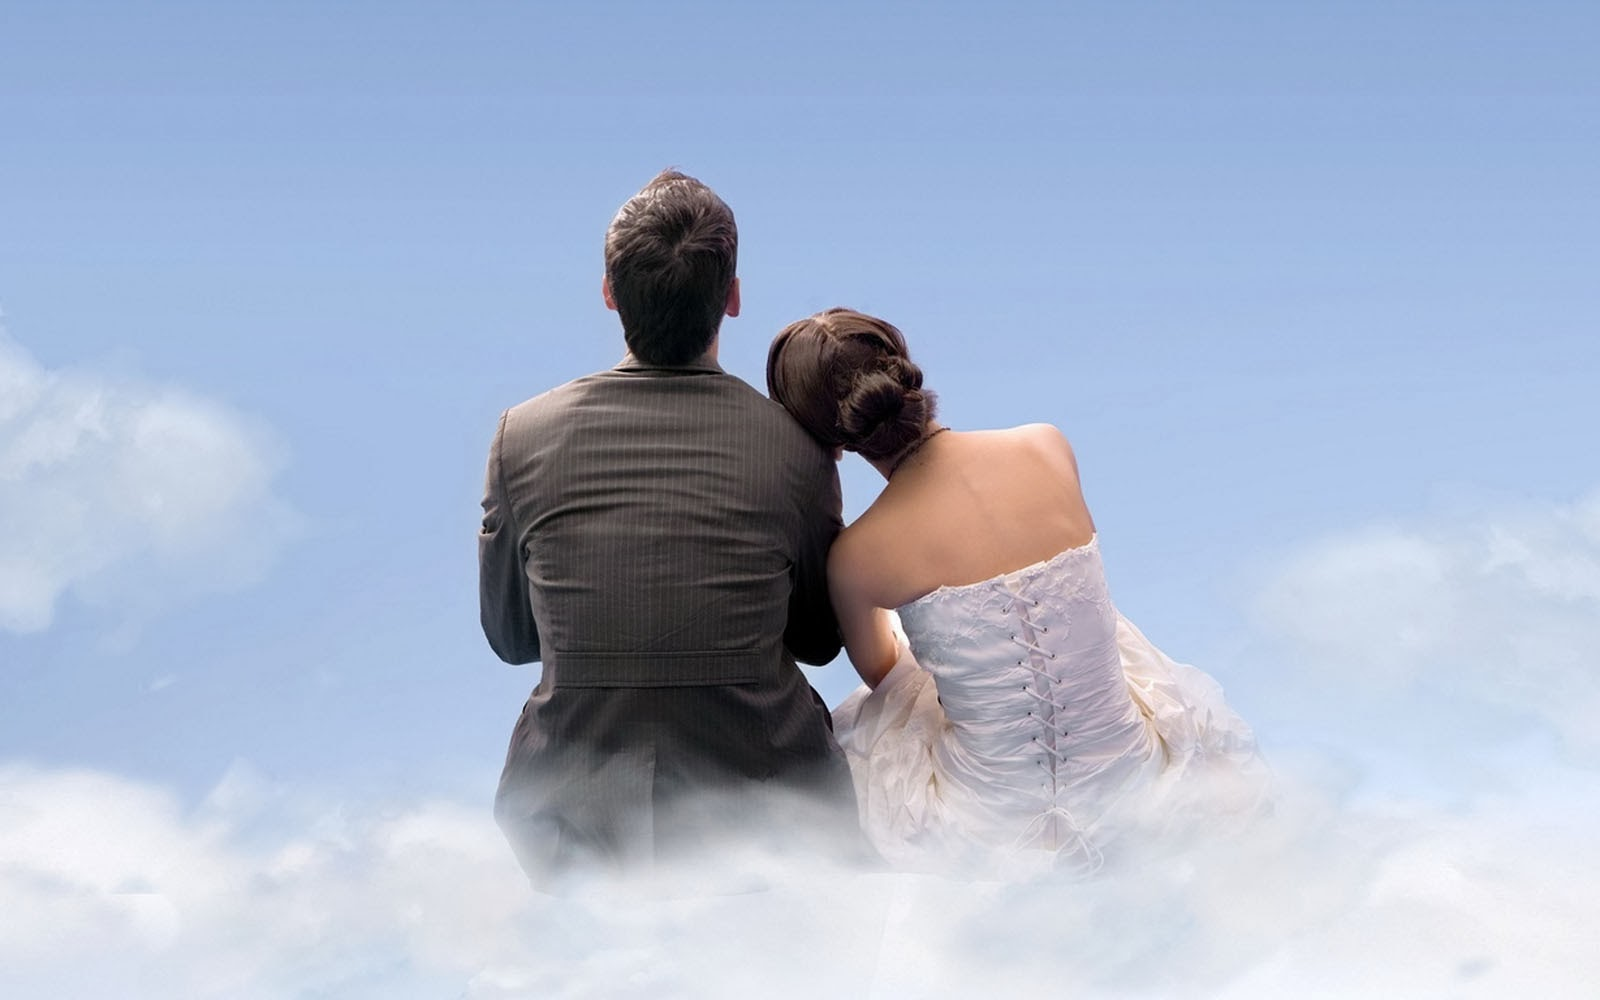 Love couple Wallpaper 2013 : wallpapers: True Love couple Wallpapers